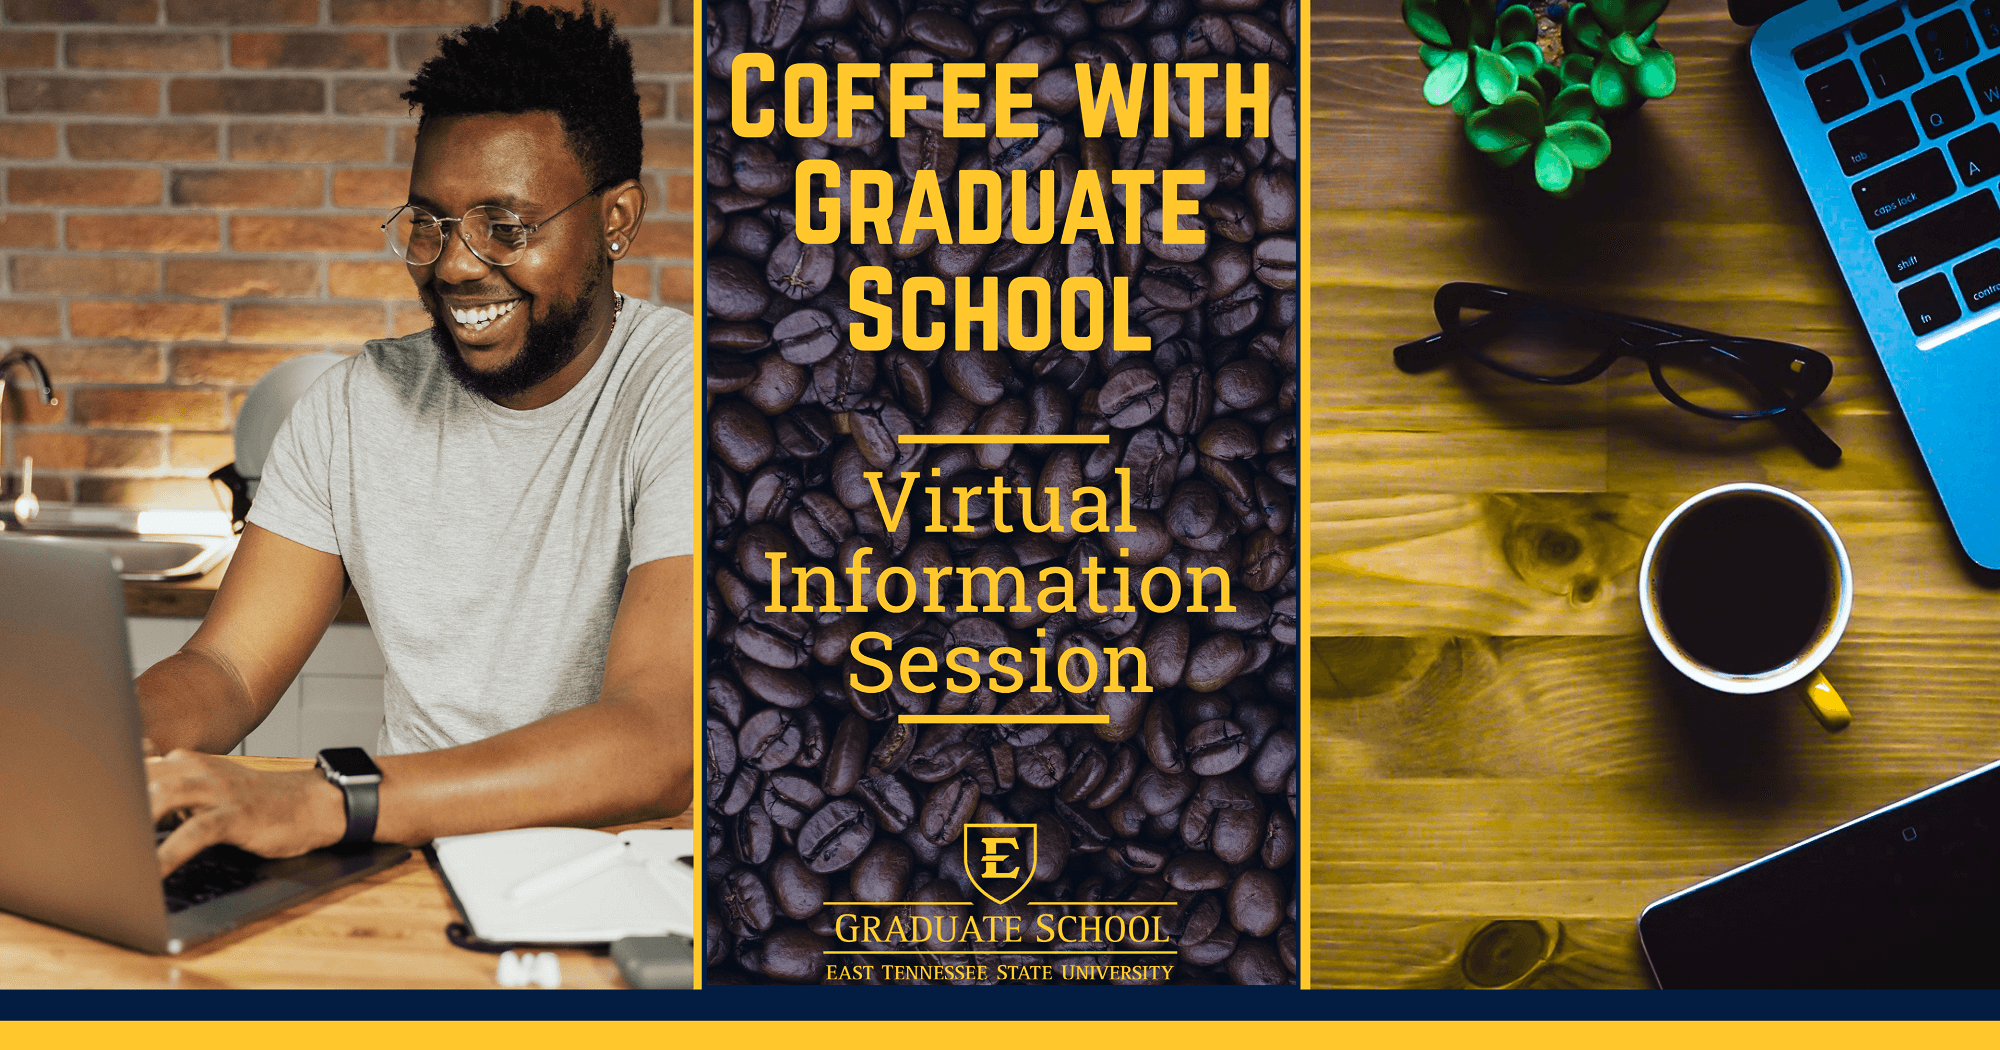 Find out more about your Graduate Program at our Coffee With the Graduate School Virtual Info Session